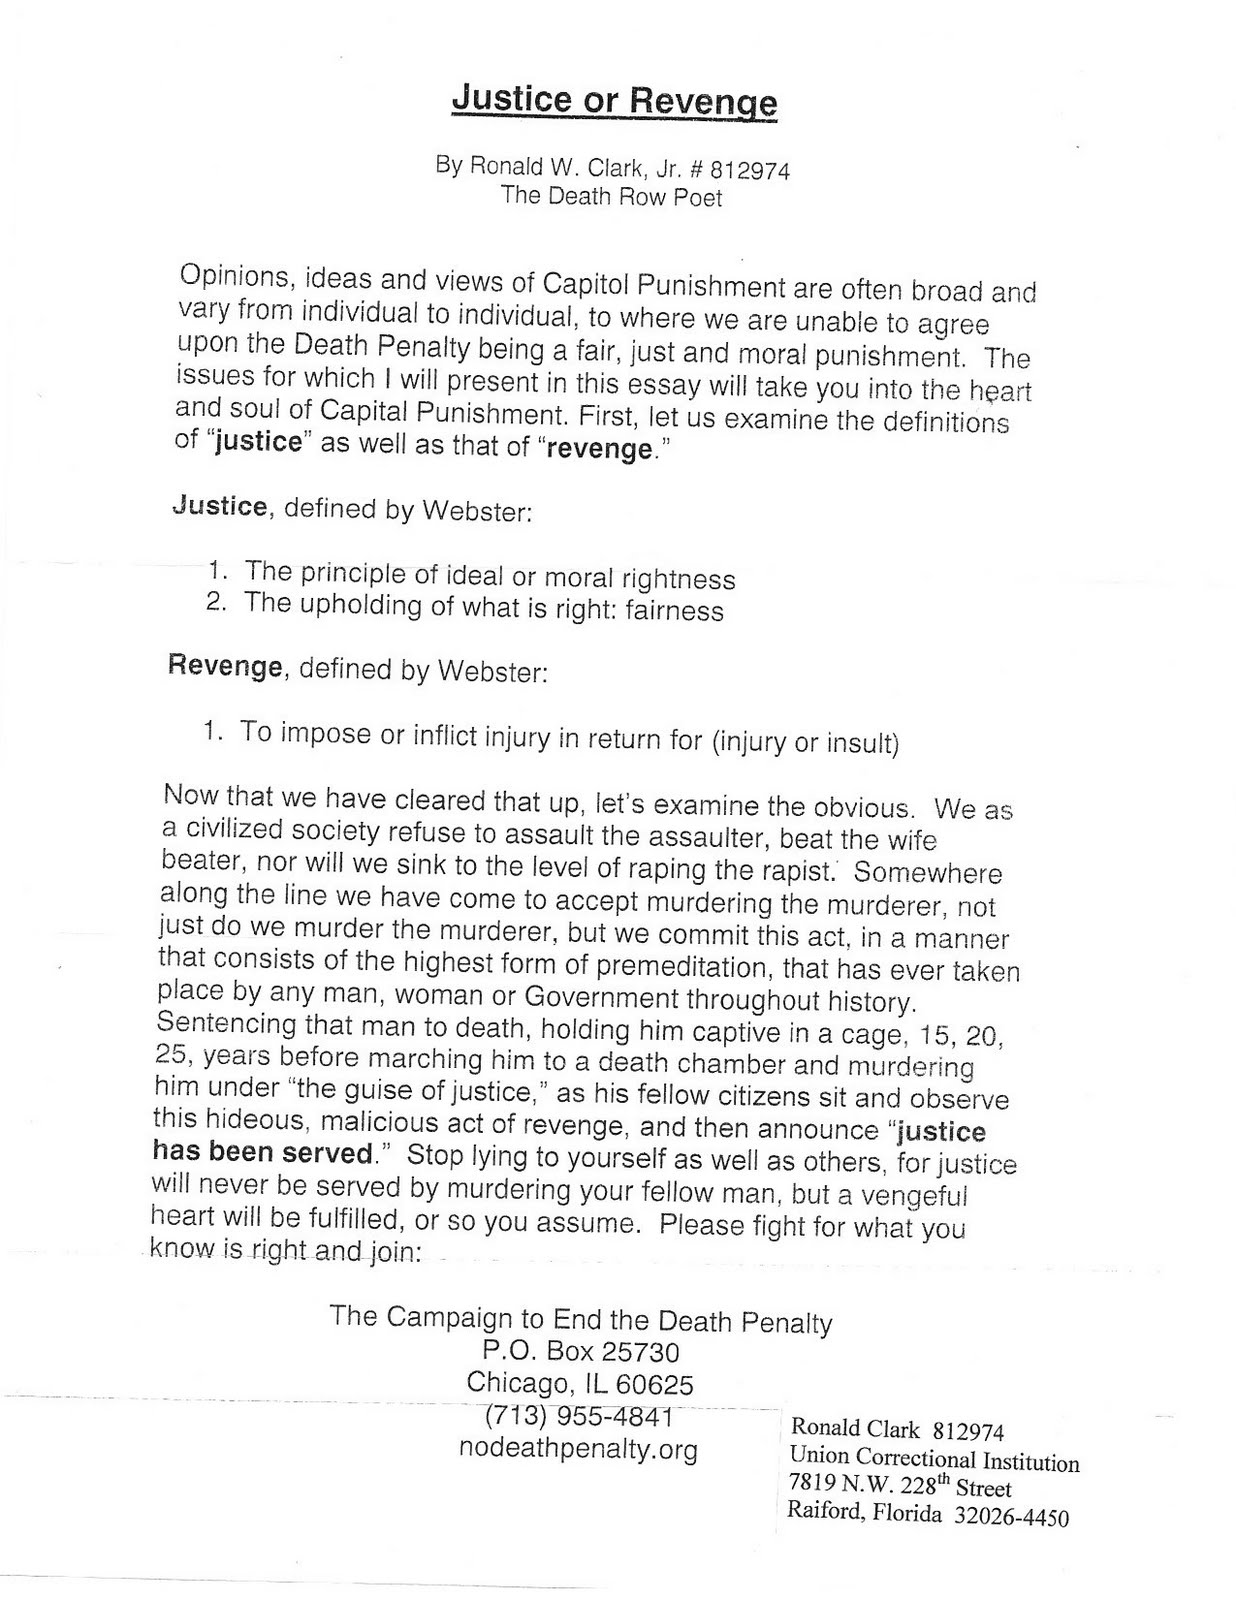 an argumentative essay on the death penalty Cemistry homework help argumentative essay on the death penalty my algebra homework help and contrast essay help.